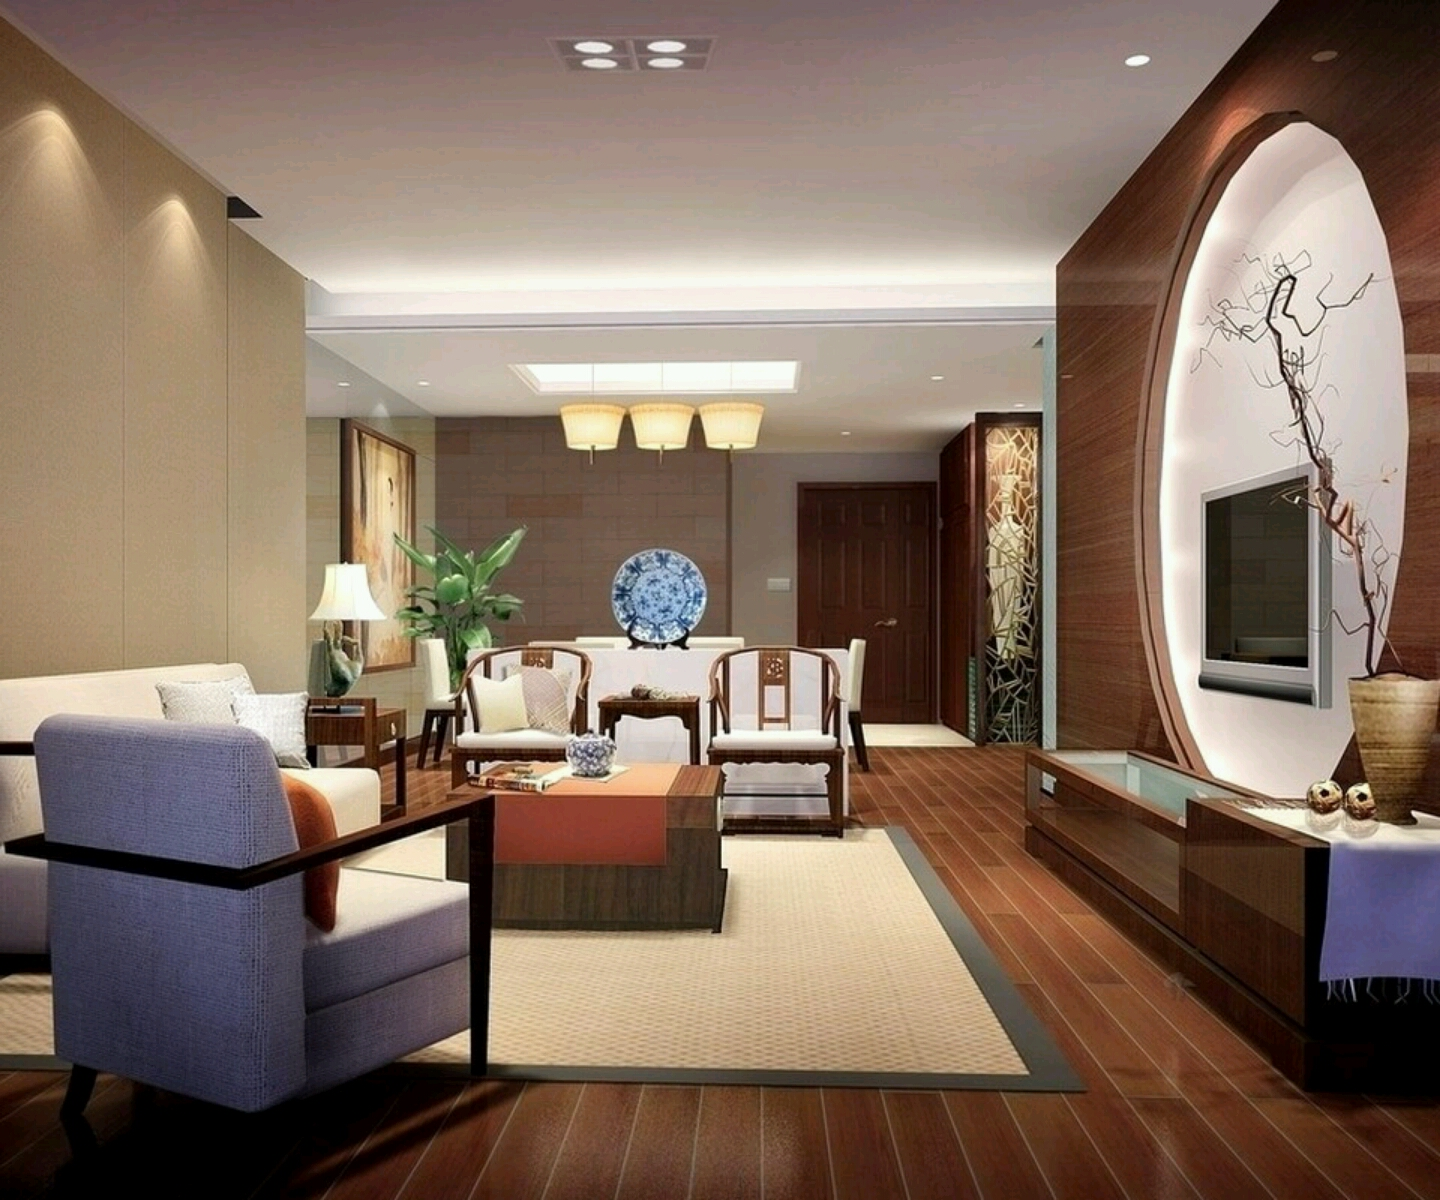 Luxury homes interior decoration living room designs ideas for Modern interior home designs ideas